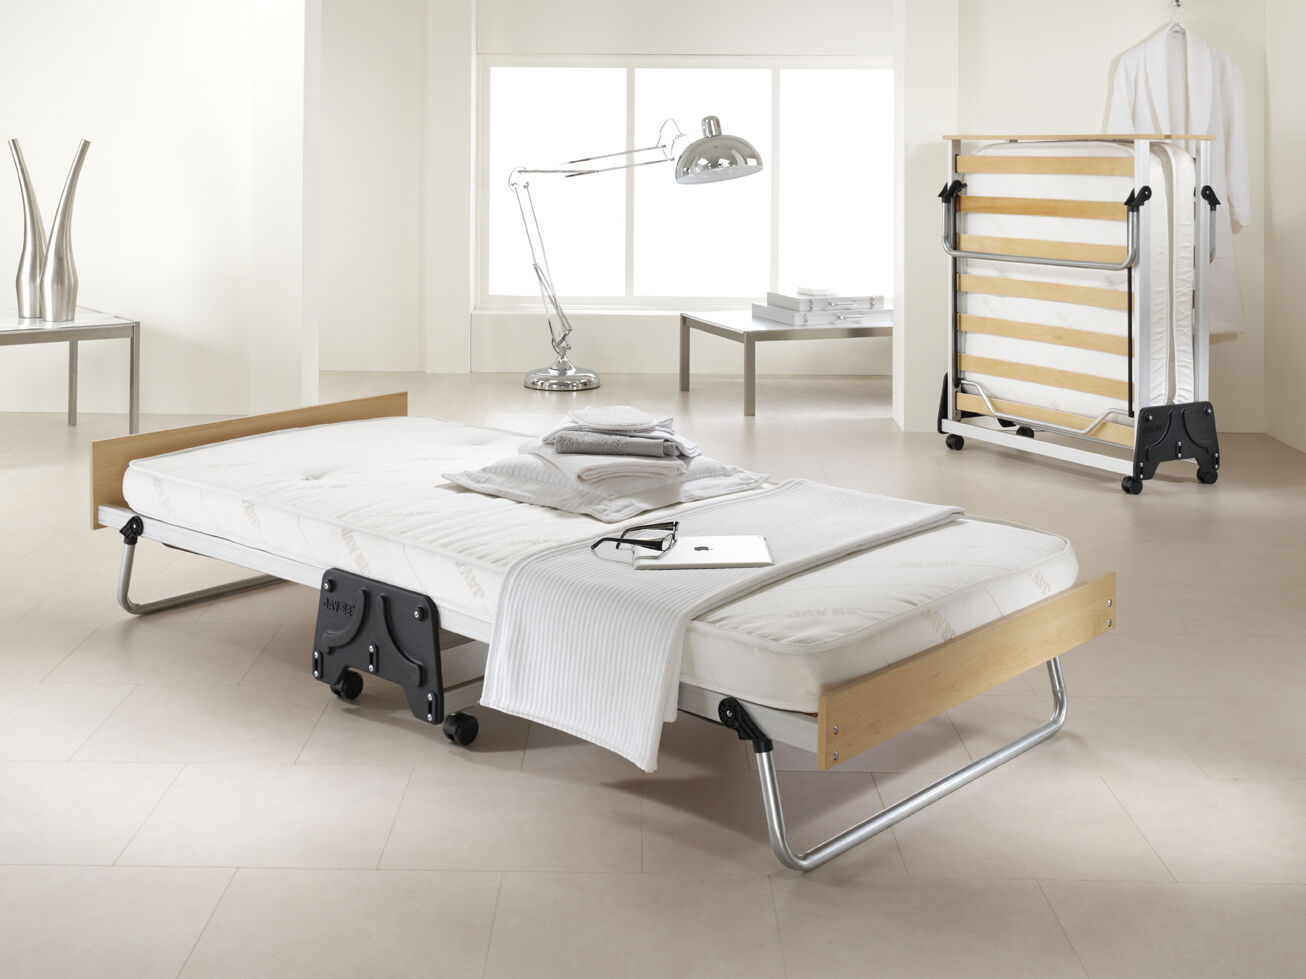 - Jay Be J Bed Power Airflow Folding Single Guest Bed With Airflow Fibre  Mattress EBay